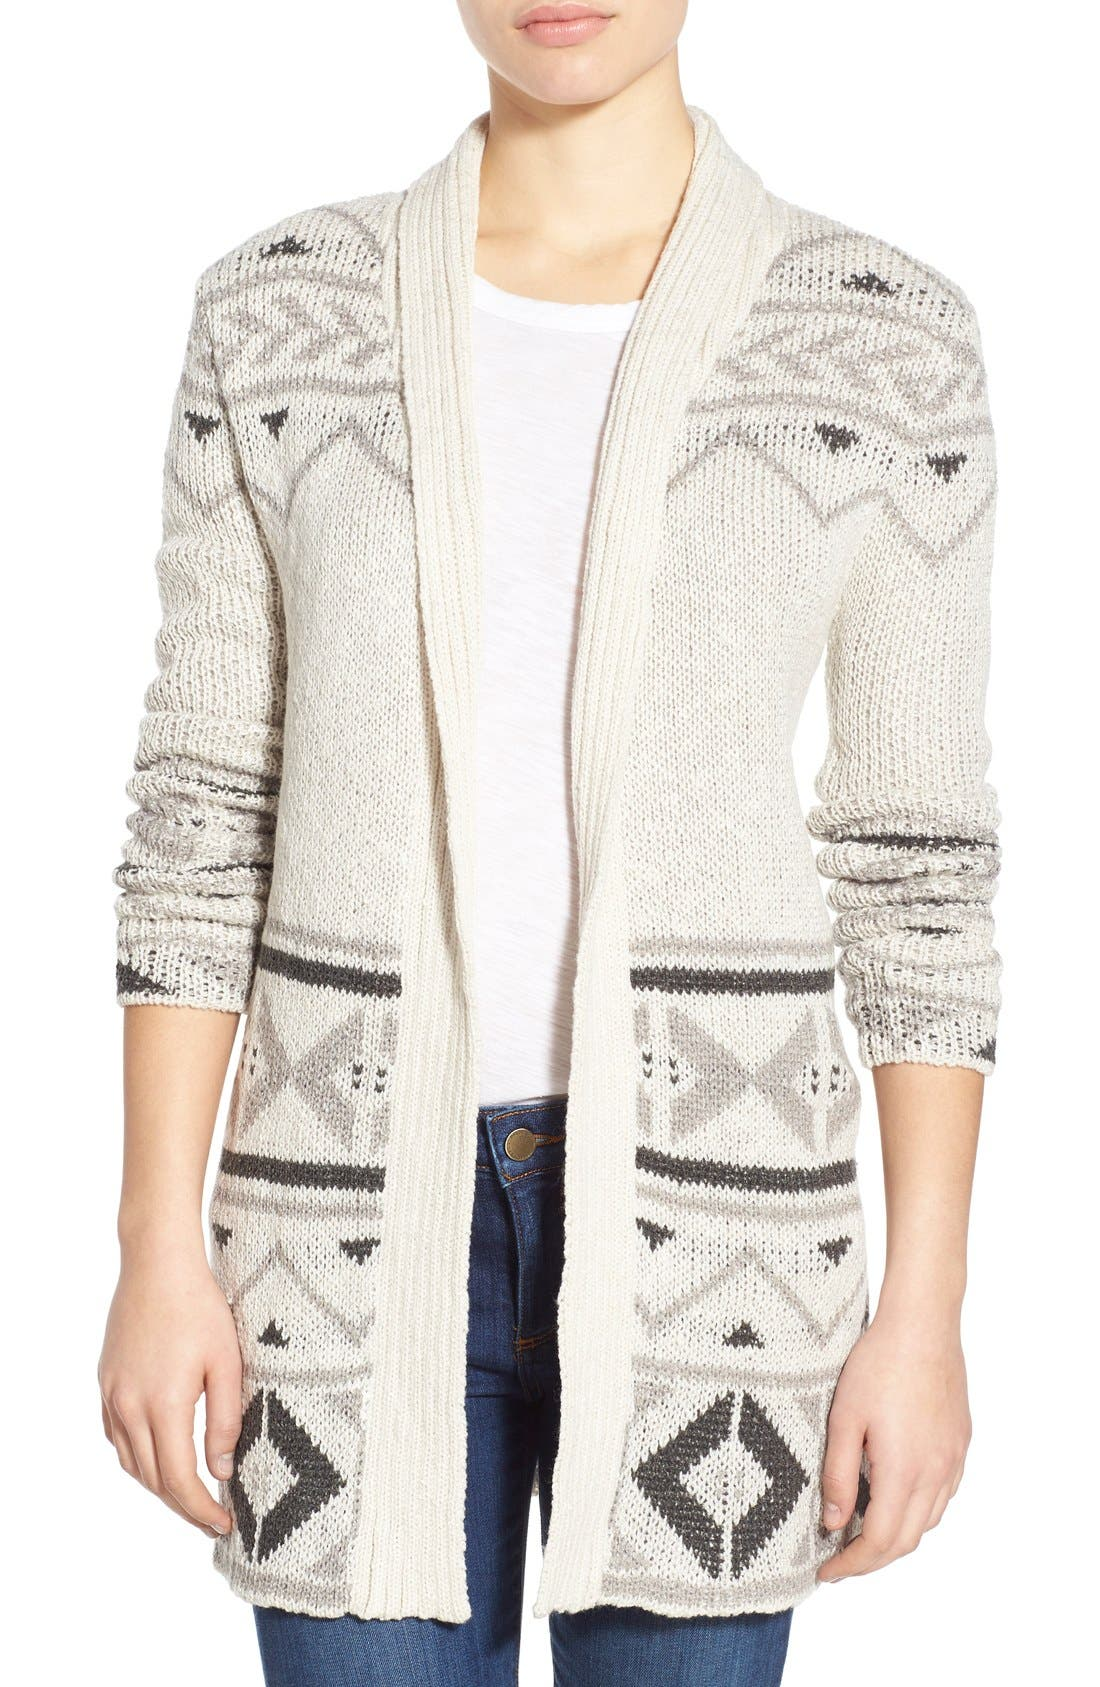 Alternate Image 1 Selected - cupcakes and cashmere 'Reilly' Open Front Long Cardigan